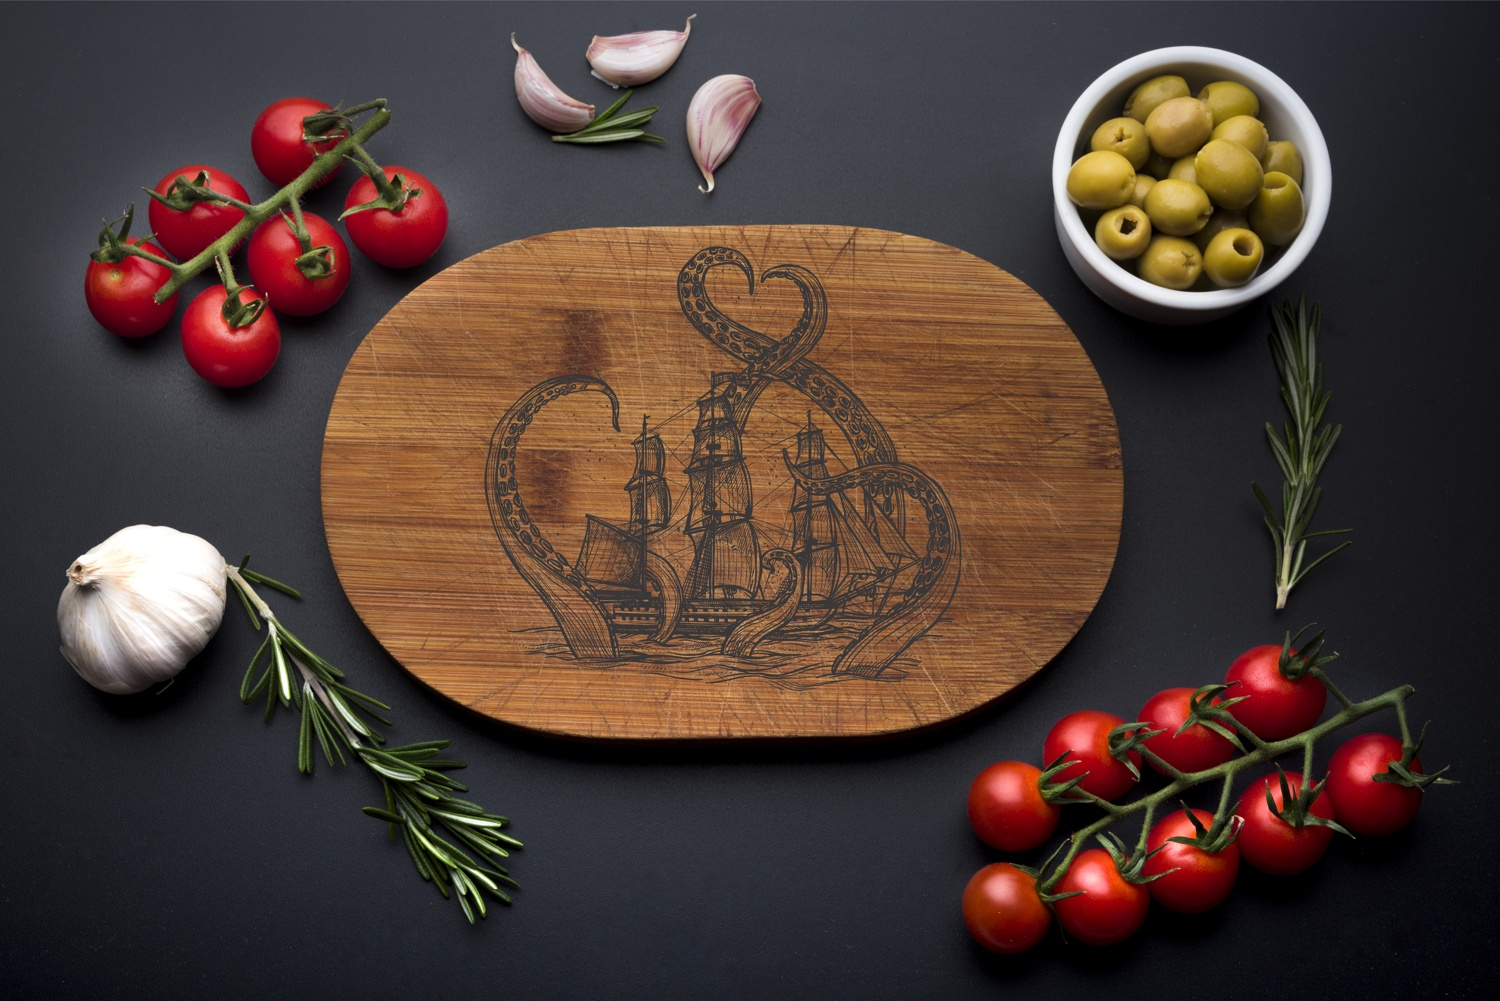 Laser Engraving Sailing Ship Drawing For Chopping Board Free CDR Vectors Art